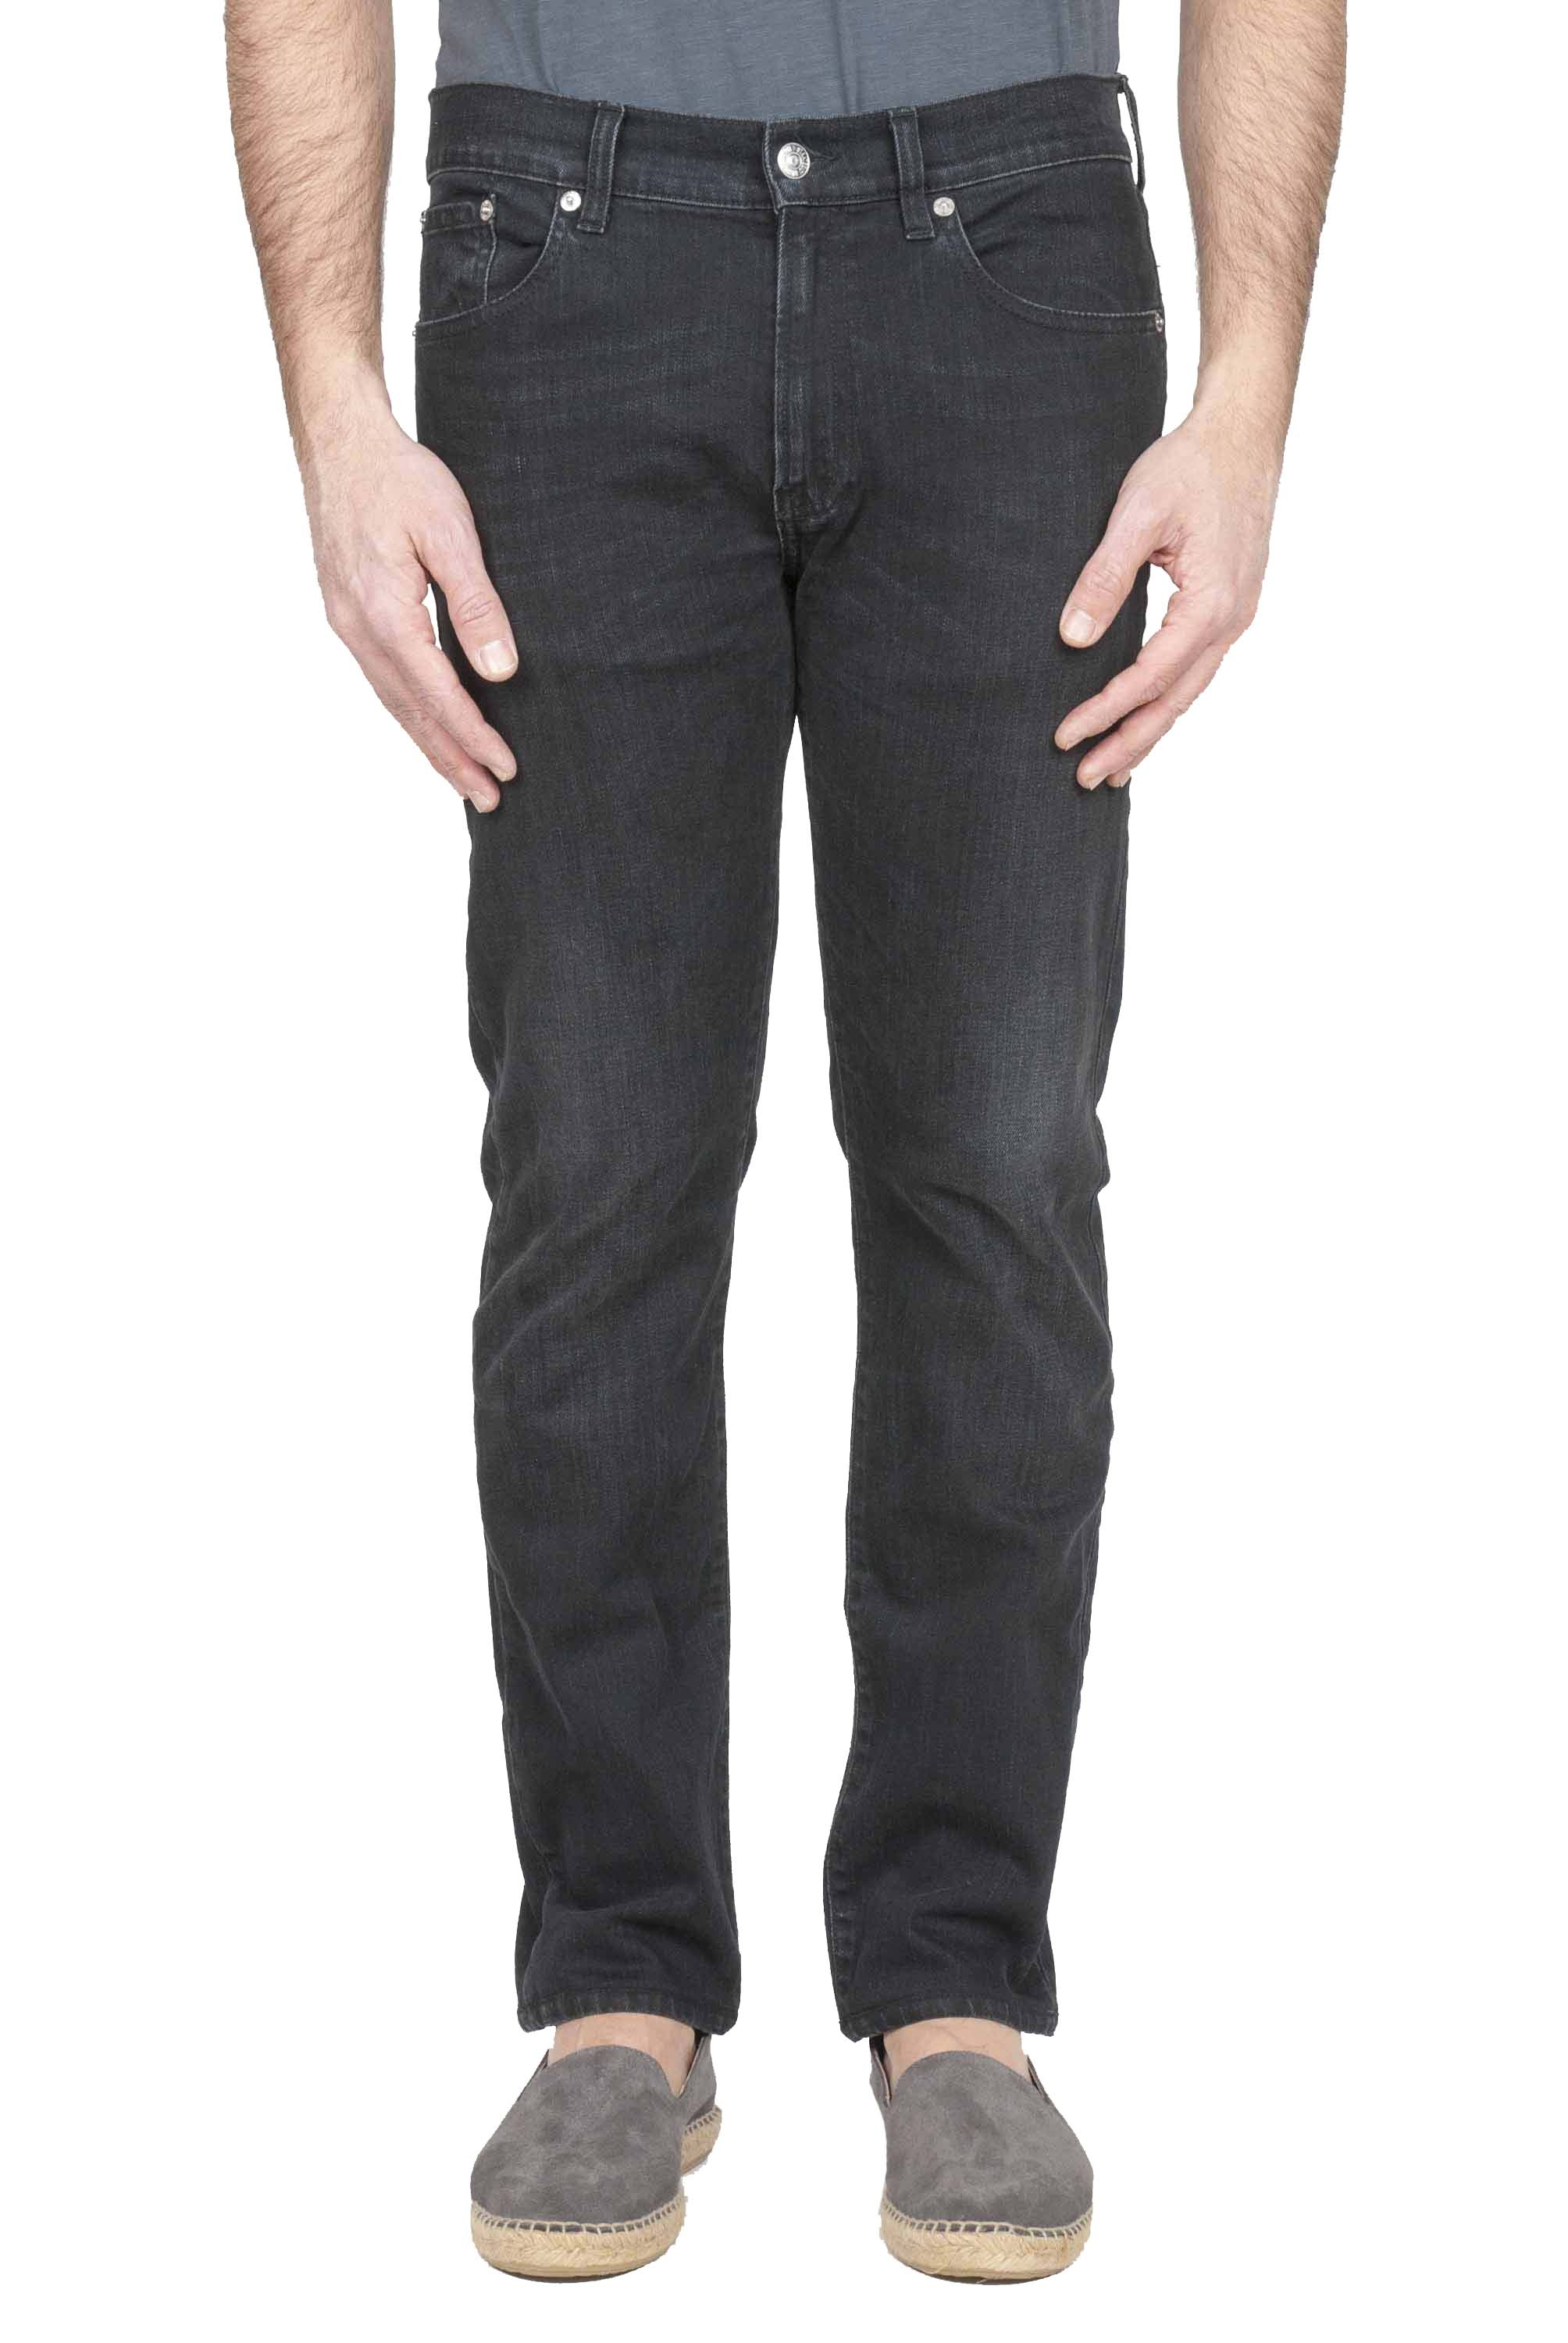 SBU 01122 Jeans en denim stretch 01